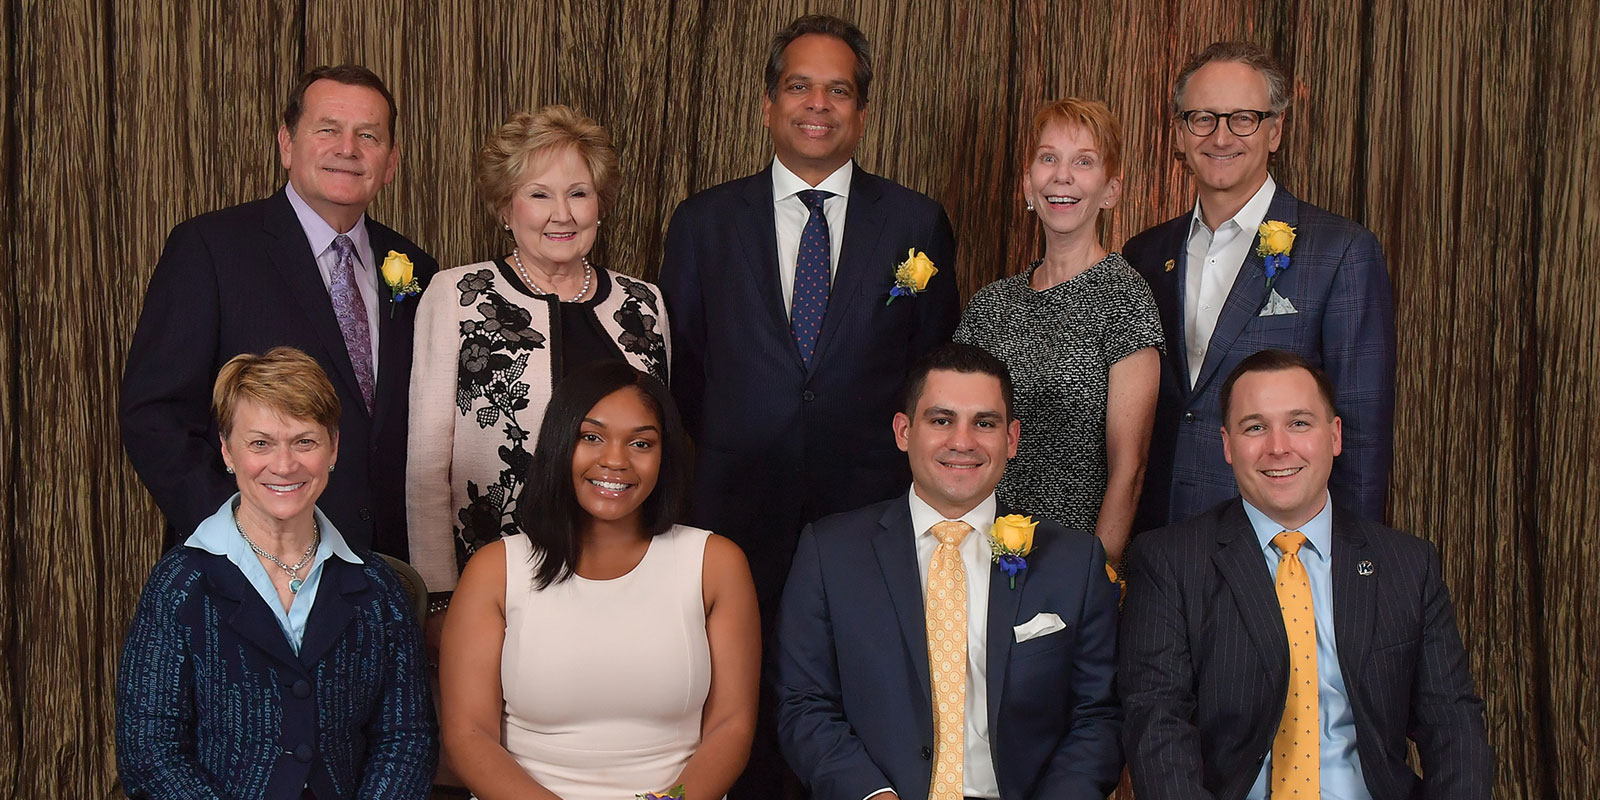 Kent State University Alumni Association hosted the annual Alumni Awards ceremony at the Kent State Hotel and Conference Center on October 5, 2018.